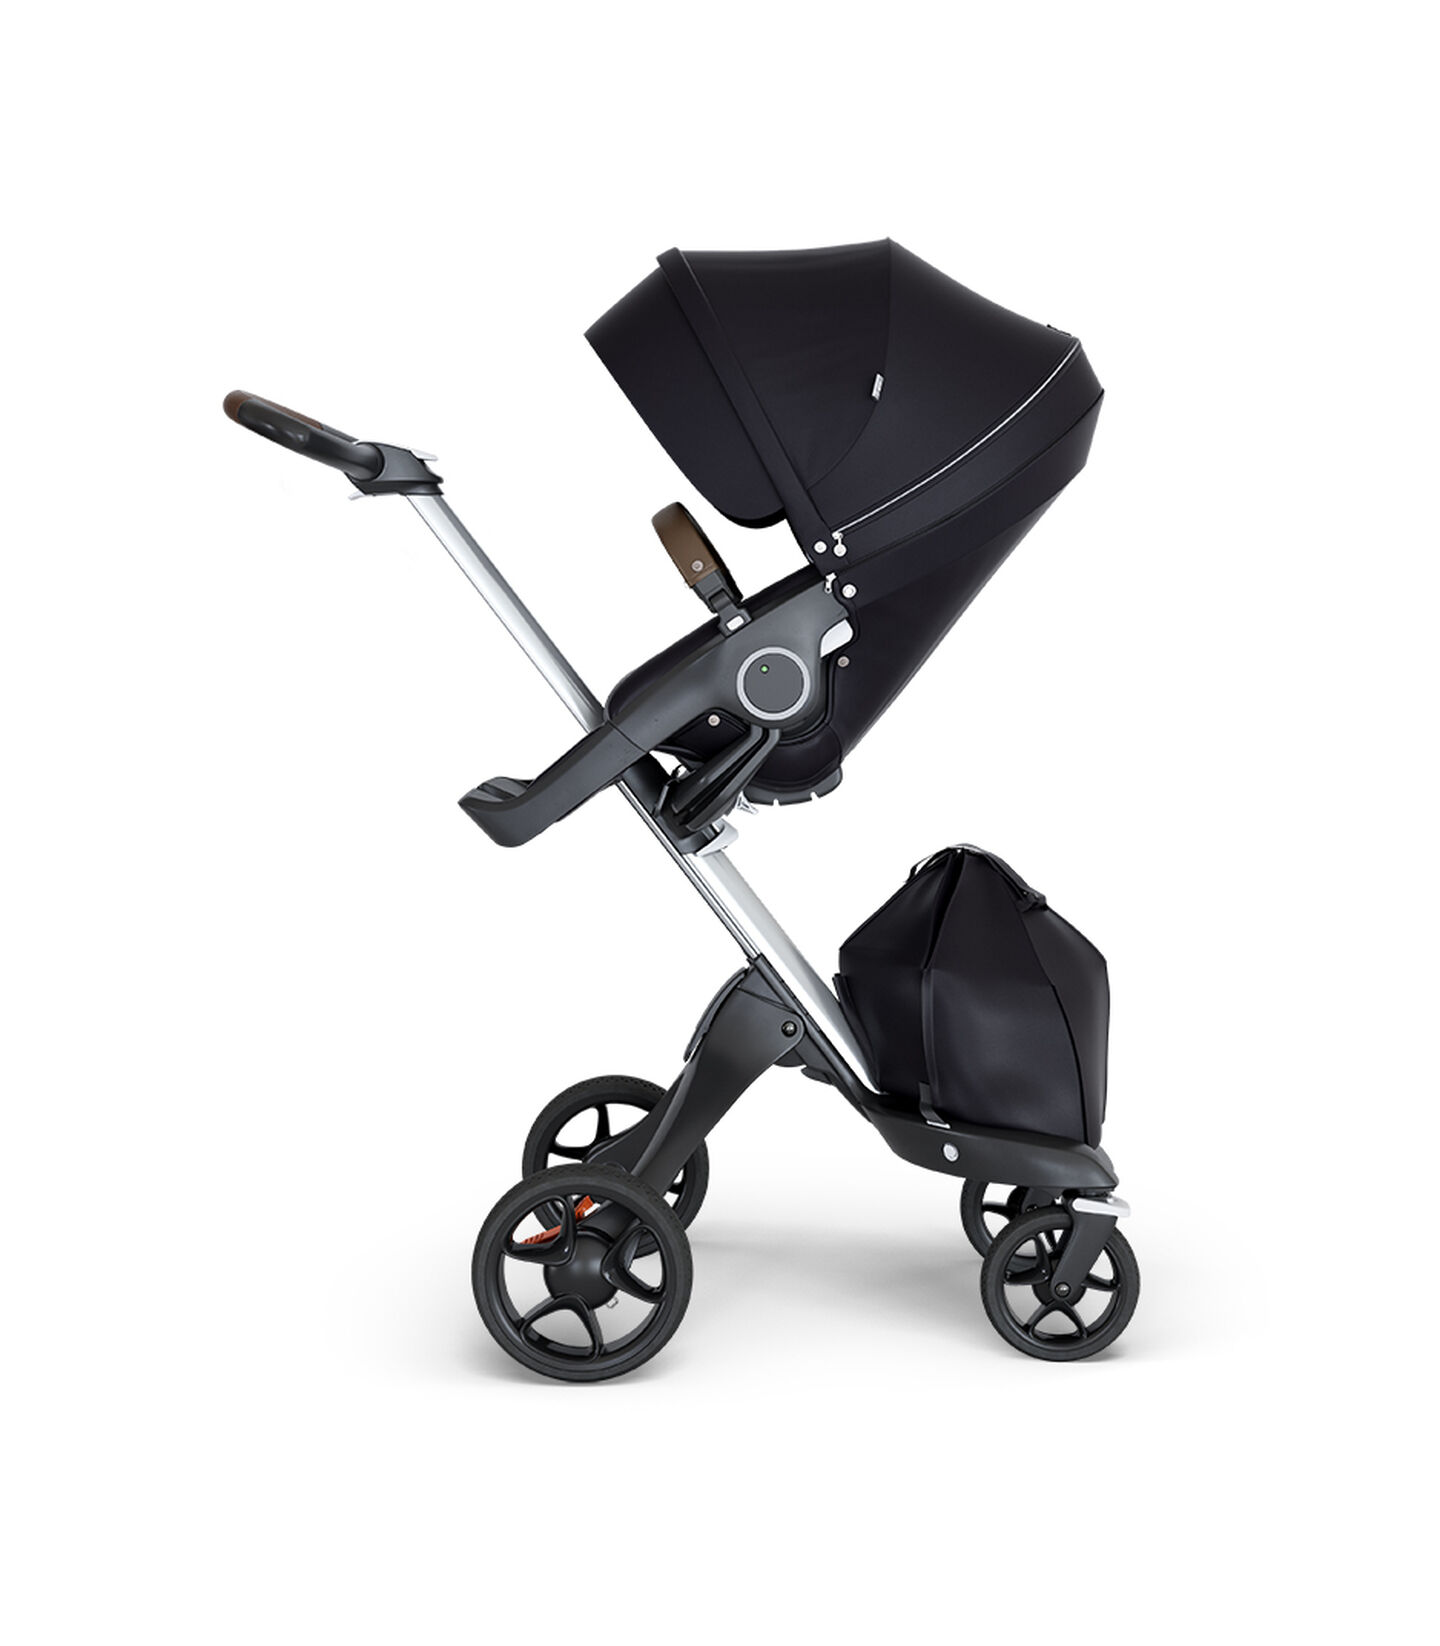 Stokke® Xplory® wtih Silver Chassis and Leatherette Brown handle. Stokke® Stroller Seat Black.